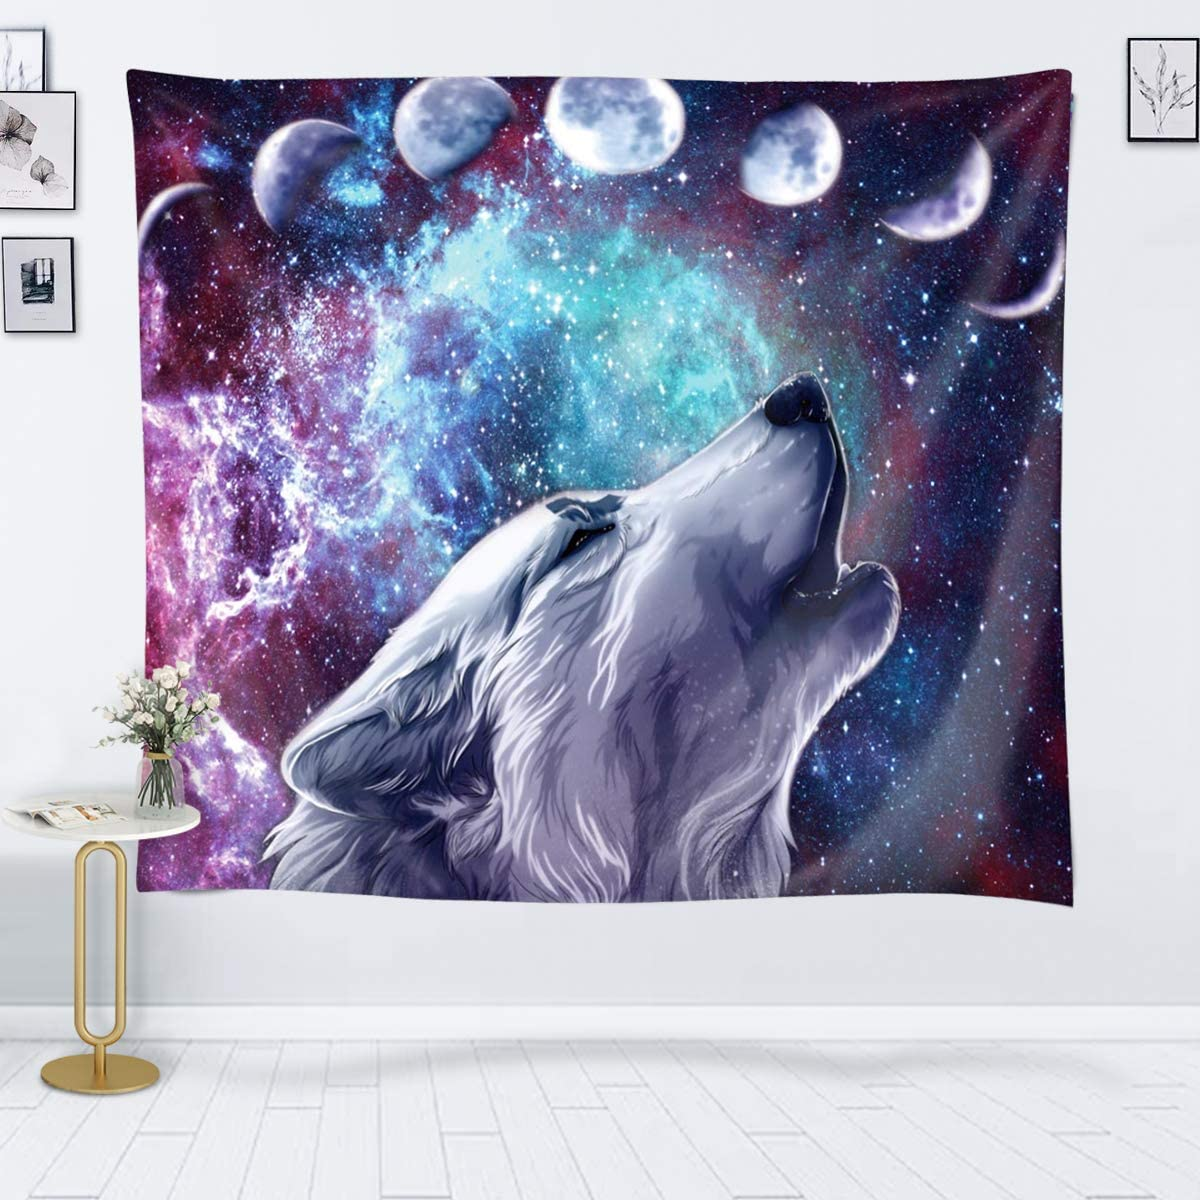 JOYSOG Wolf Tapestry Space Moon Tapestry Wall Hanging Wolves in Starry Night Sky Tapestries Galaxy Stardust Wall Tapestry for Bedroom Living Room Dorm - 60